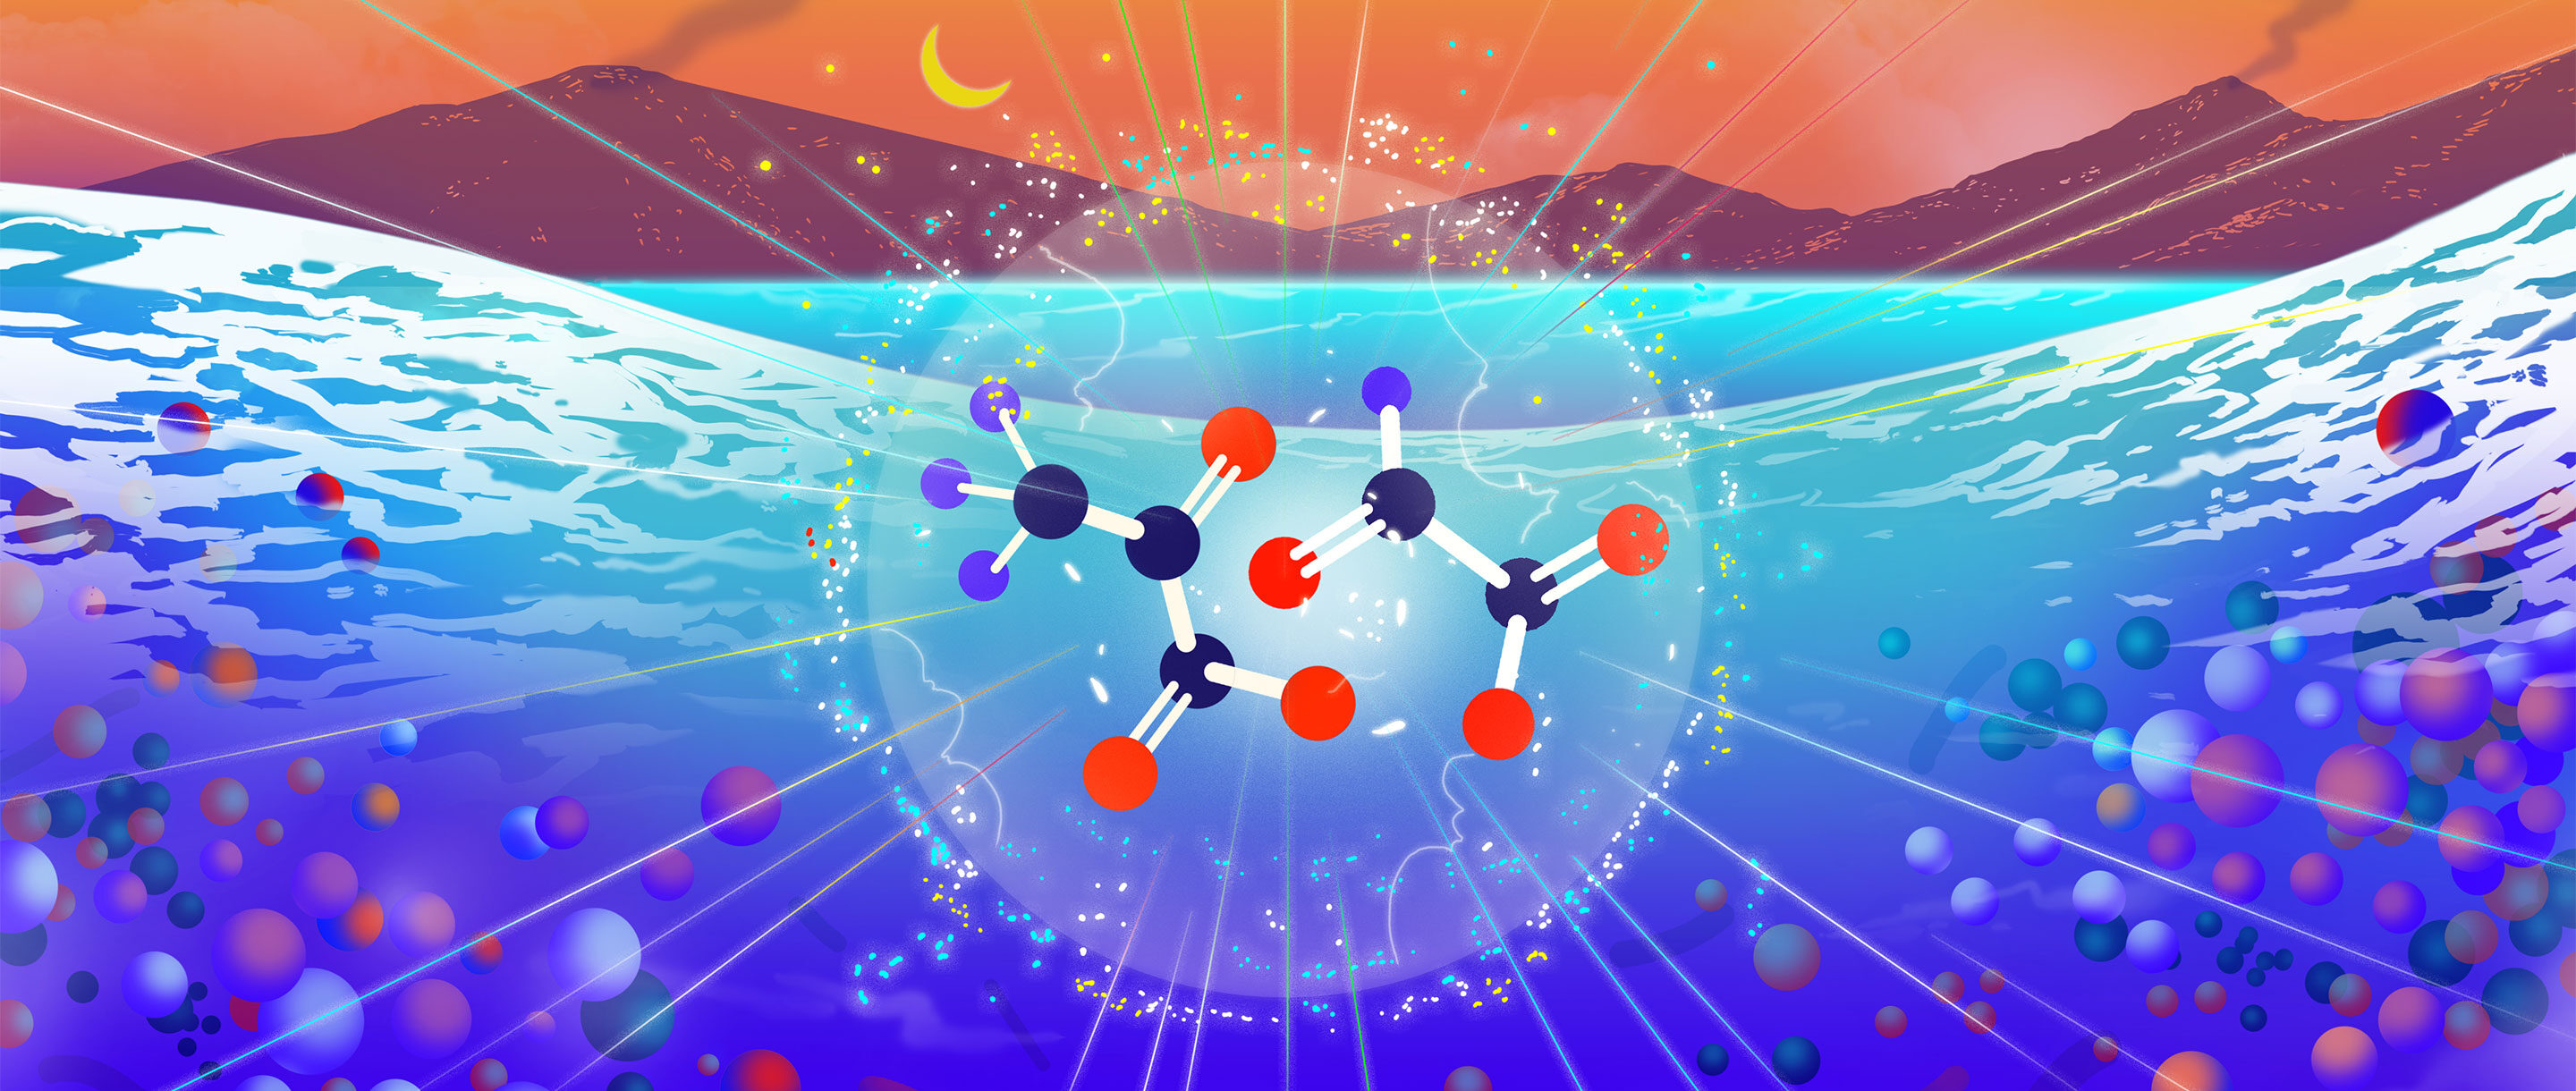 Illustration that depicts two types of simple molecules reacting in water on the early Earth.